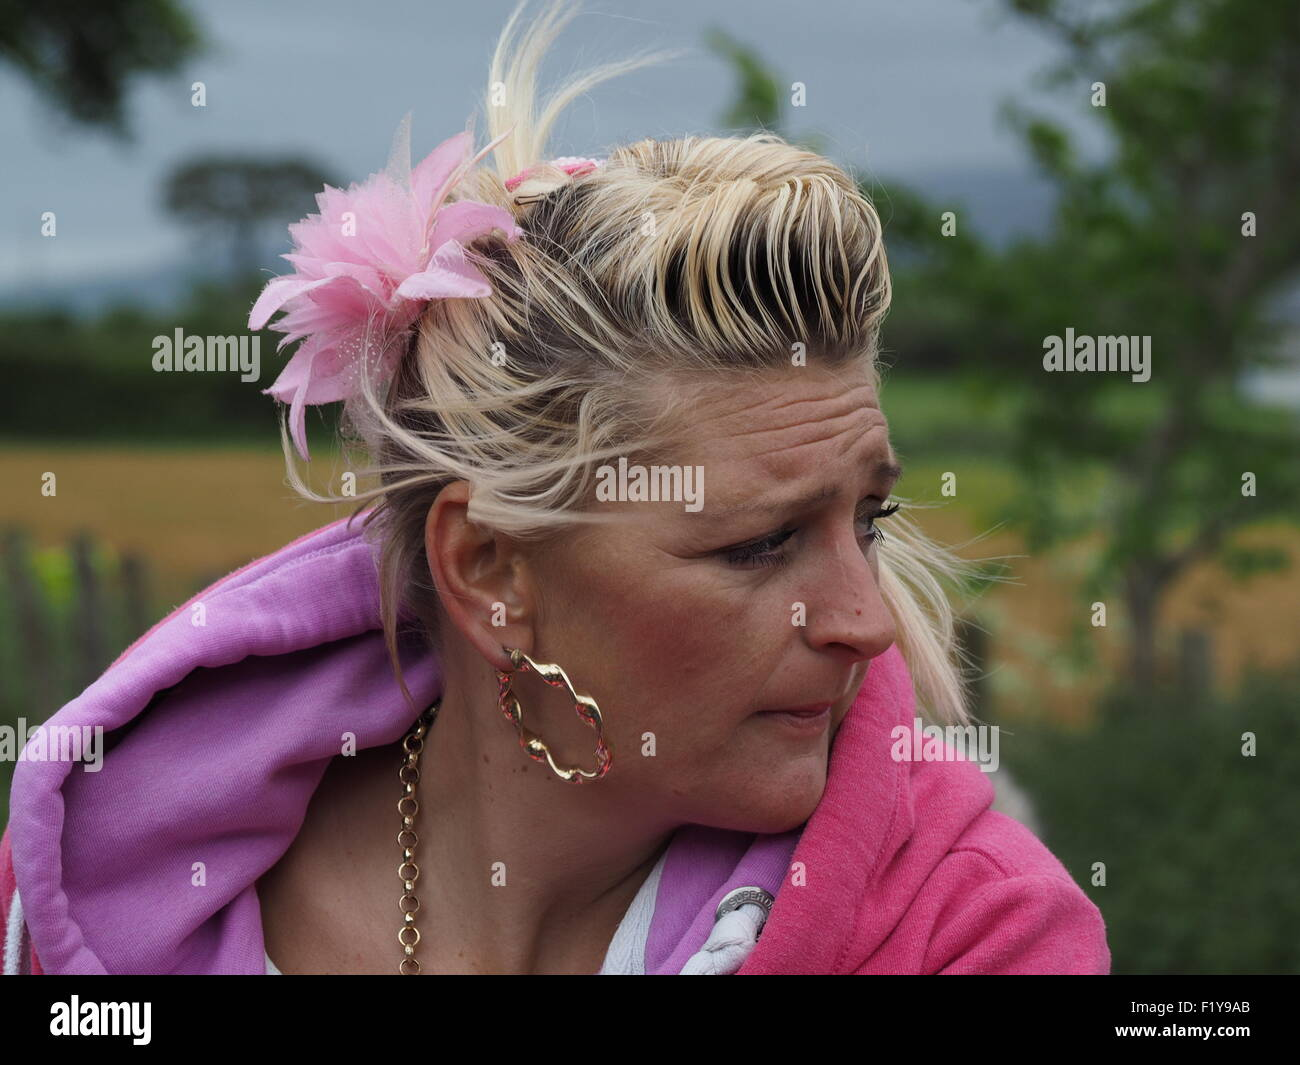 Bleach Blond Stock Photos Bleach Blond Stock Images Alamy